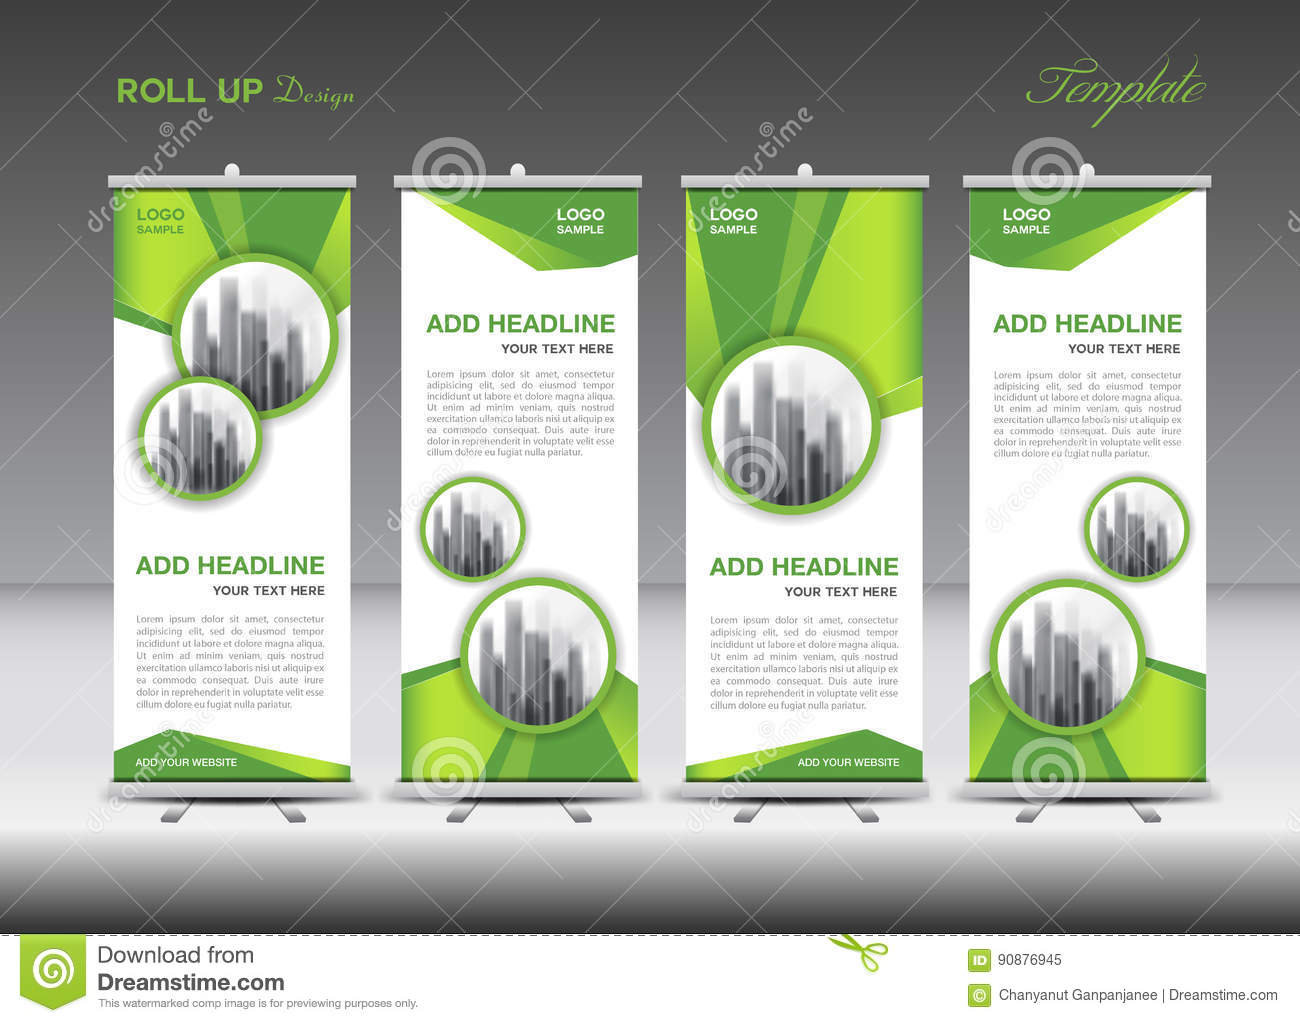 green and white roll up banner template design stock vector illustration of geometric. Black Bedroom Furniture Sets. Home Design Ideas